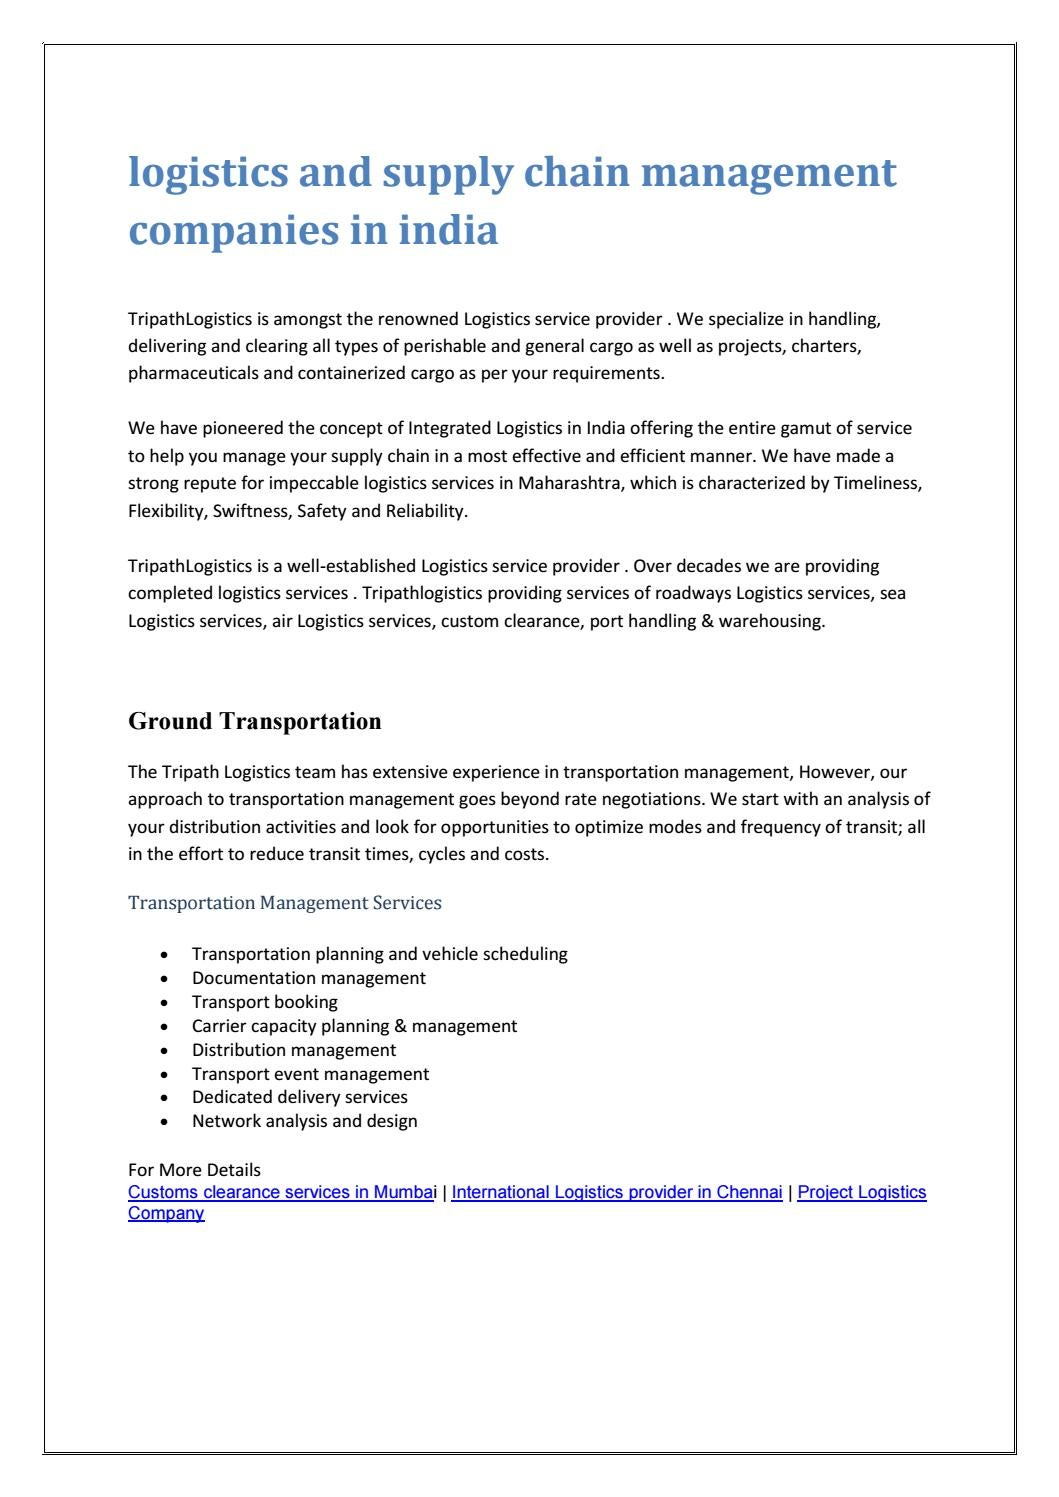 Logistics and supply chain management companies in india by